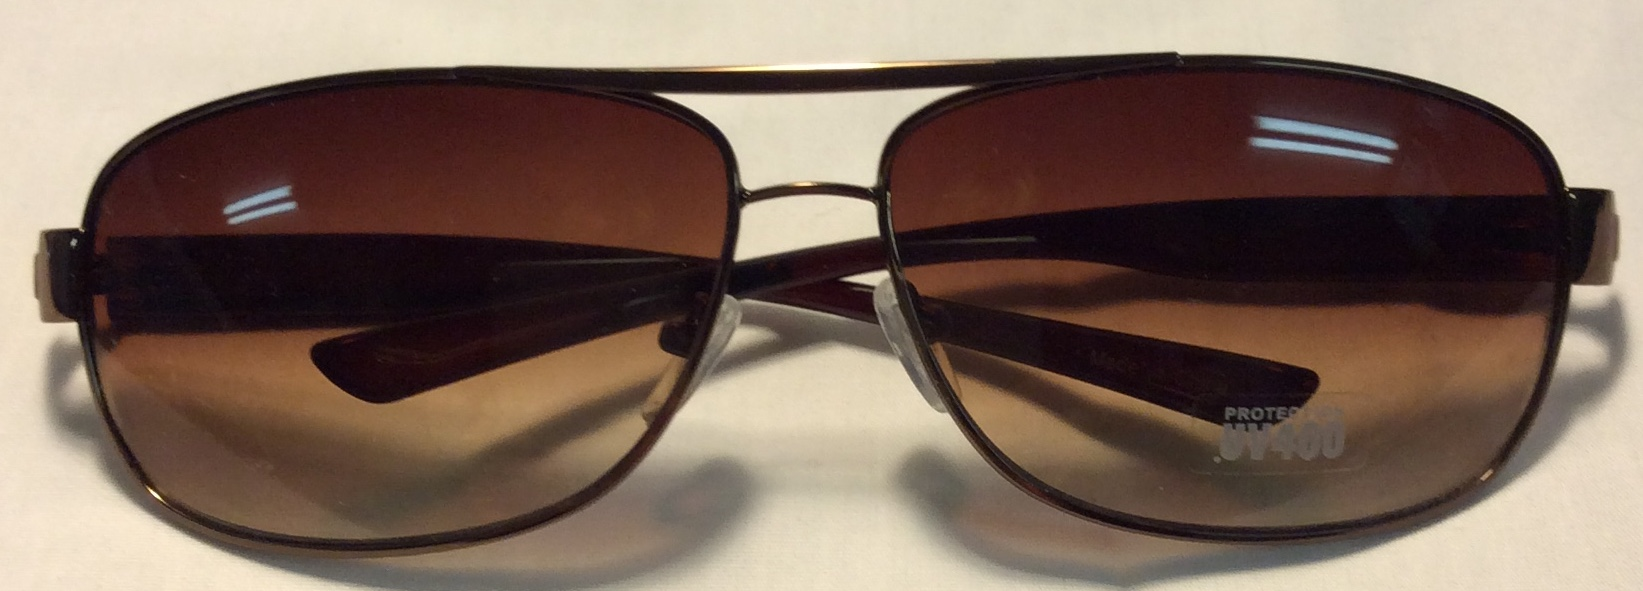 N/A - China Brown plastic frames